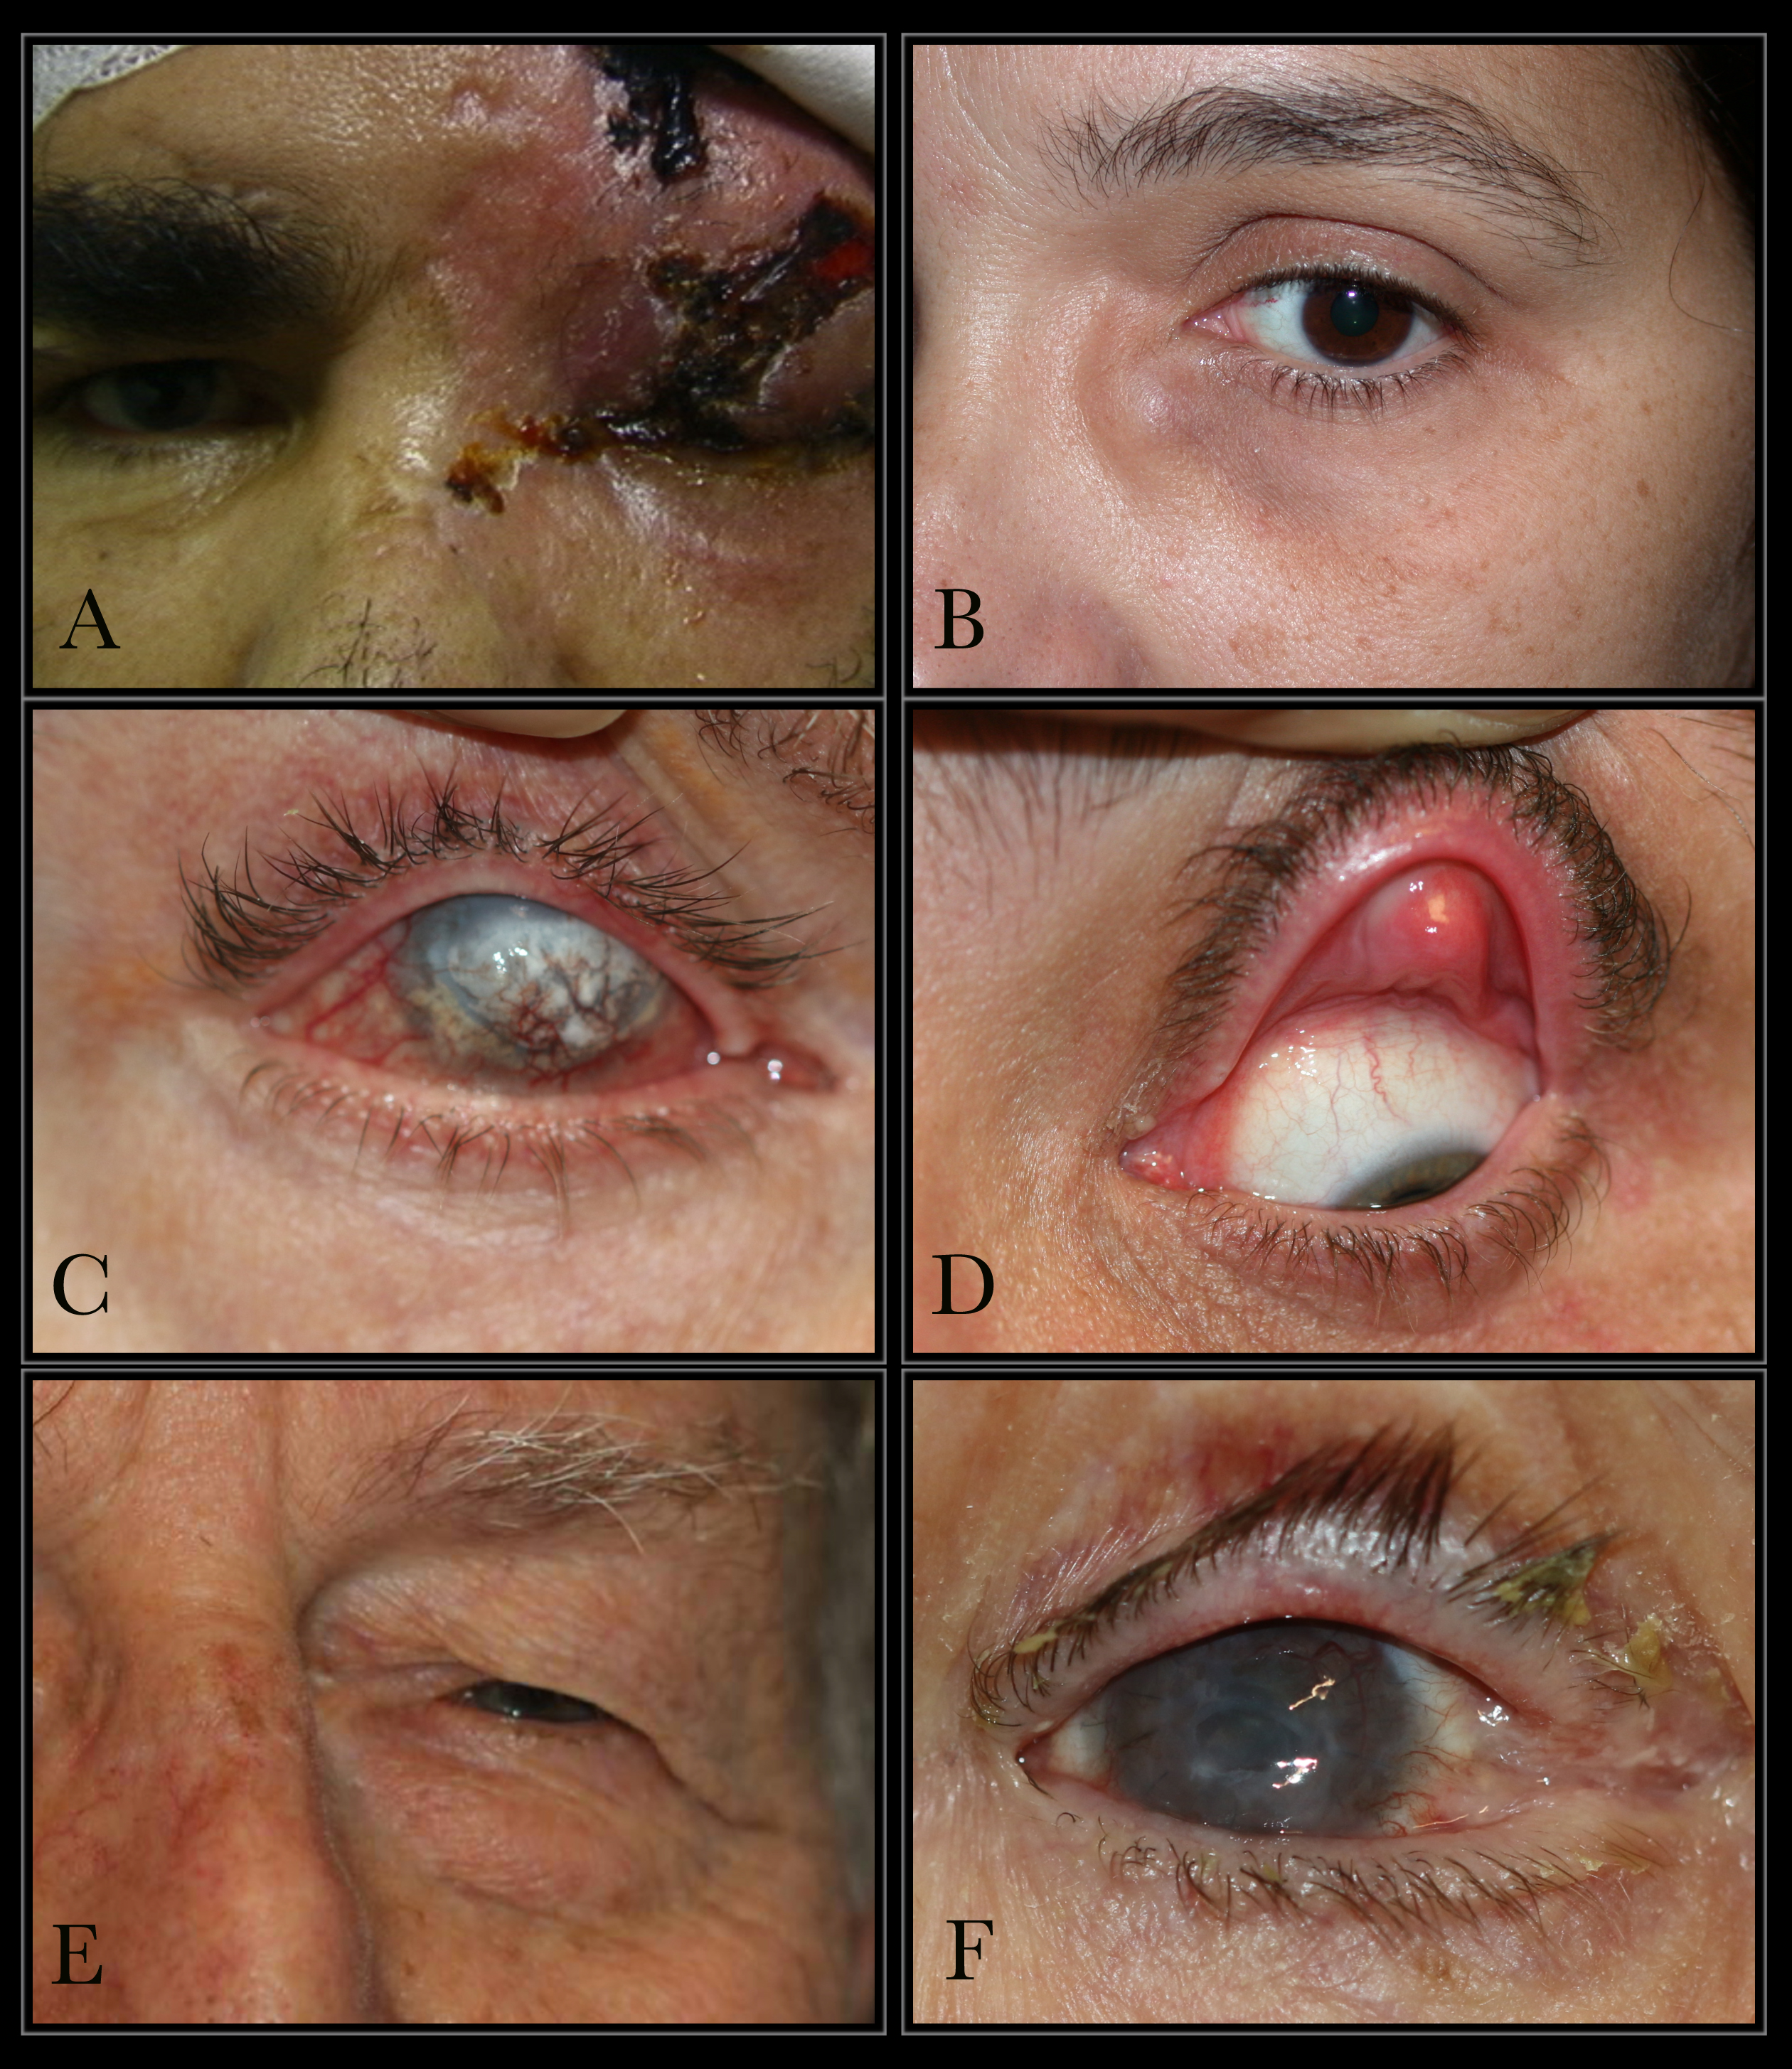 Conditions that can cause epiphora: A. Herpes Zoster with keratitis B. Lacrimal mucocele C. Corneal calcific keratopathy D. Floppy eyelid syndrome E. Kissing puncta syndrome F. Pemphigoid disease with trichiasis and obliteration of puncta